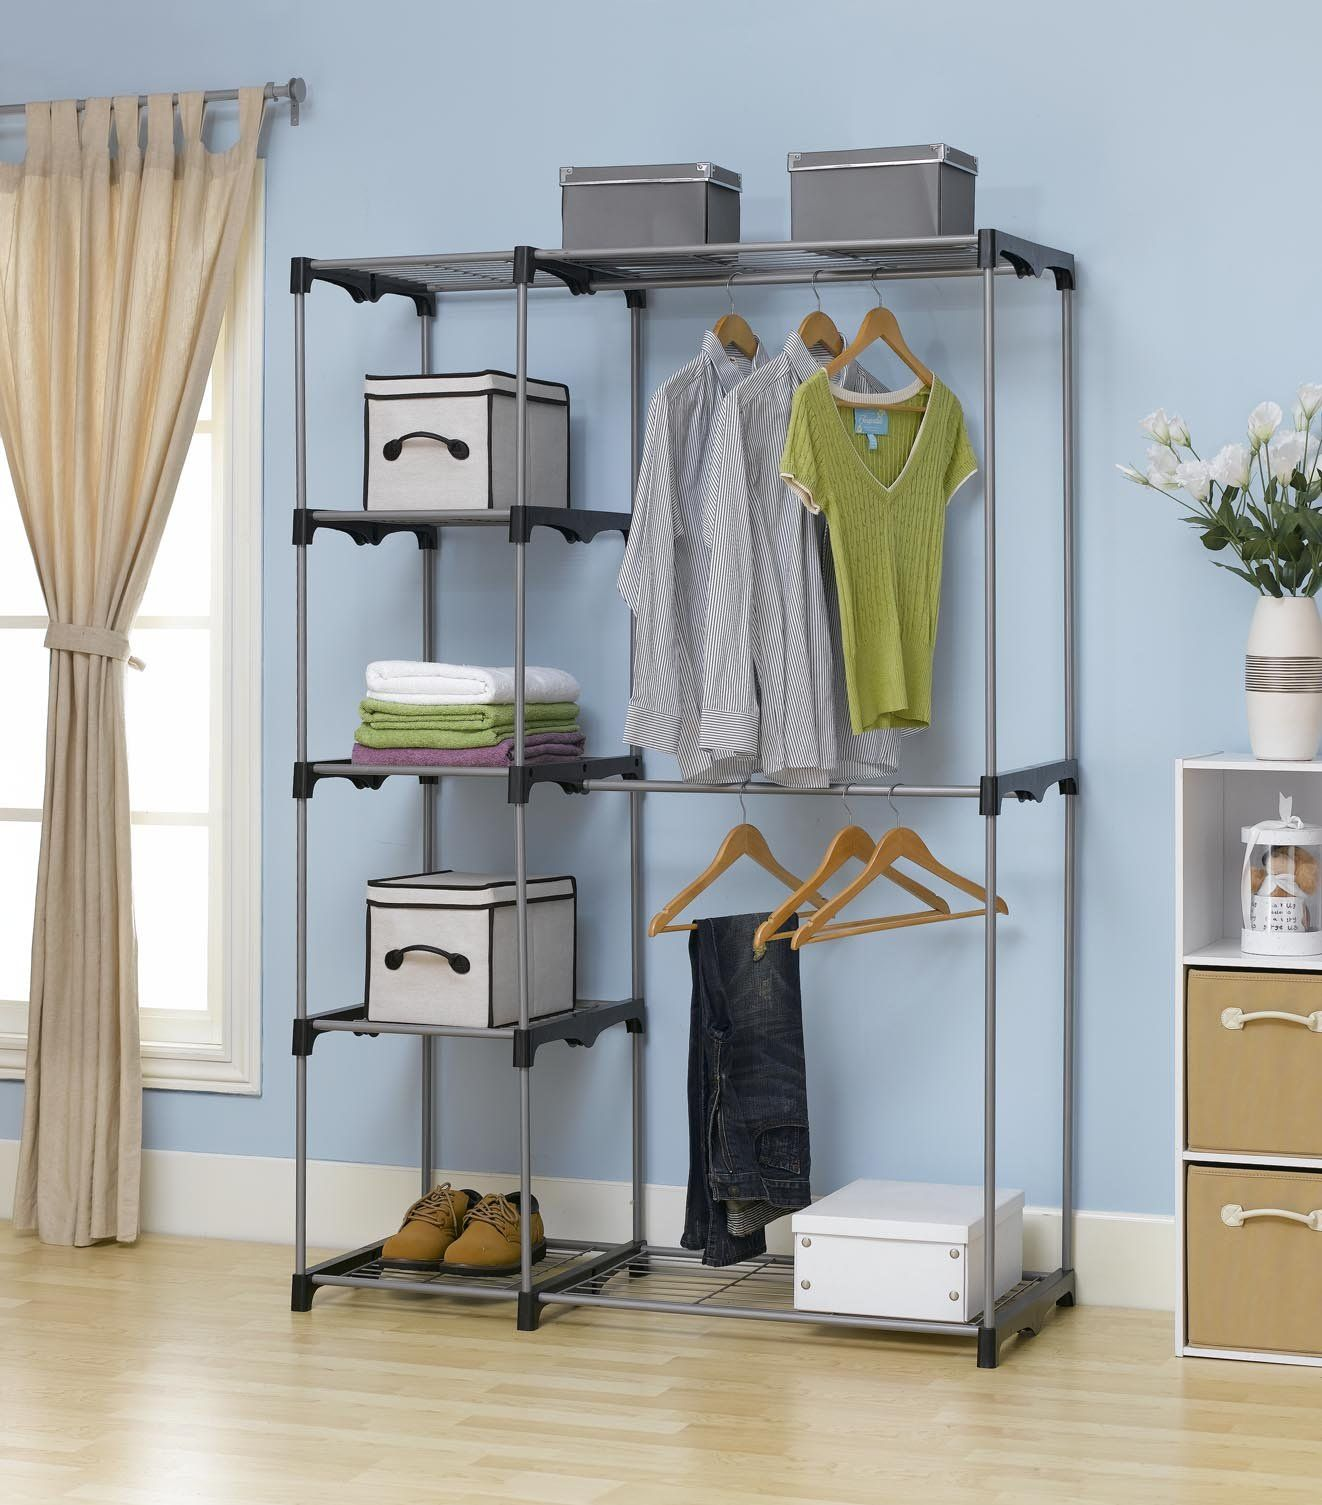 Closet Organizer Storage Rack Portable Clothes Hanger Home Garment Shelf Rod